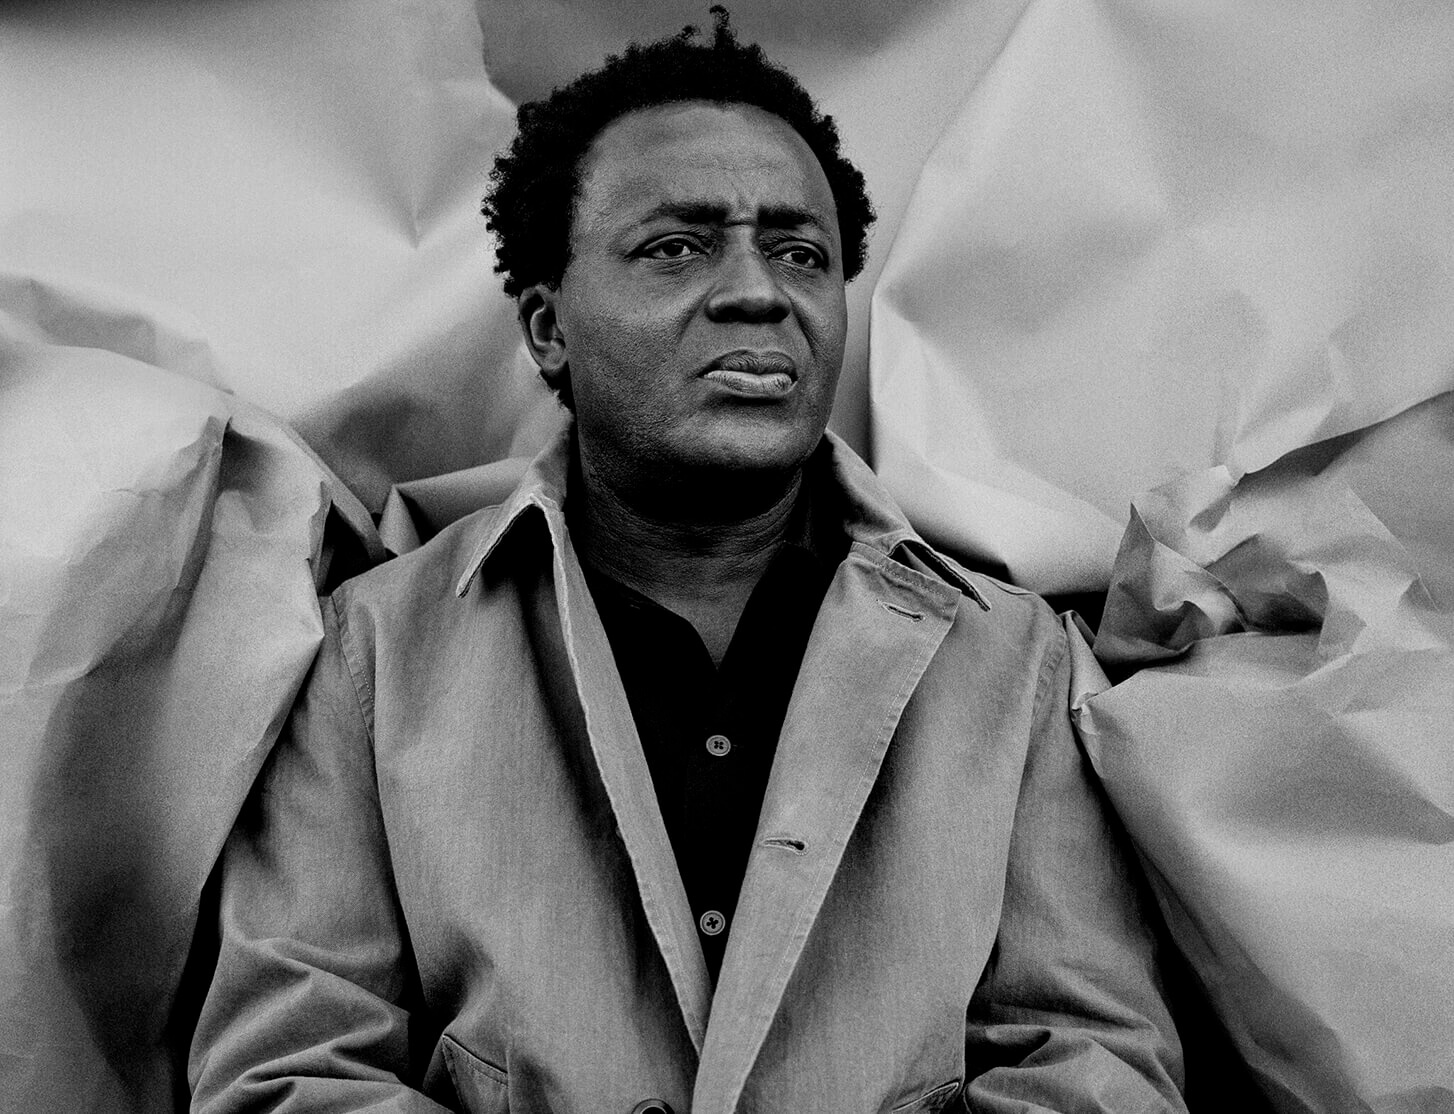 'An Artist Who Brings Order to Chaos' - John Akomfrah profiled in The New York Times